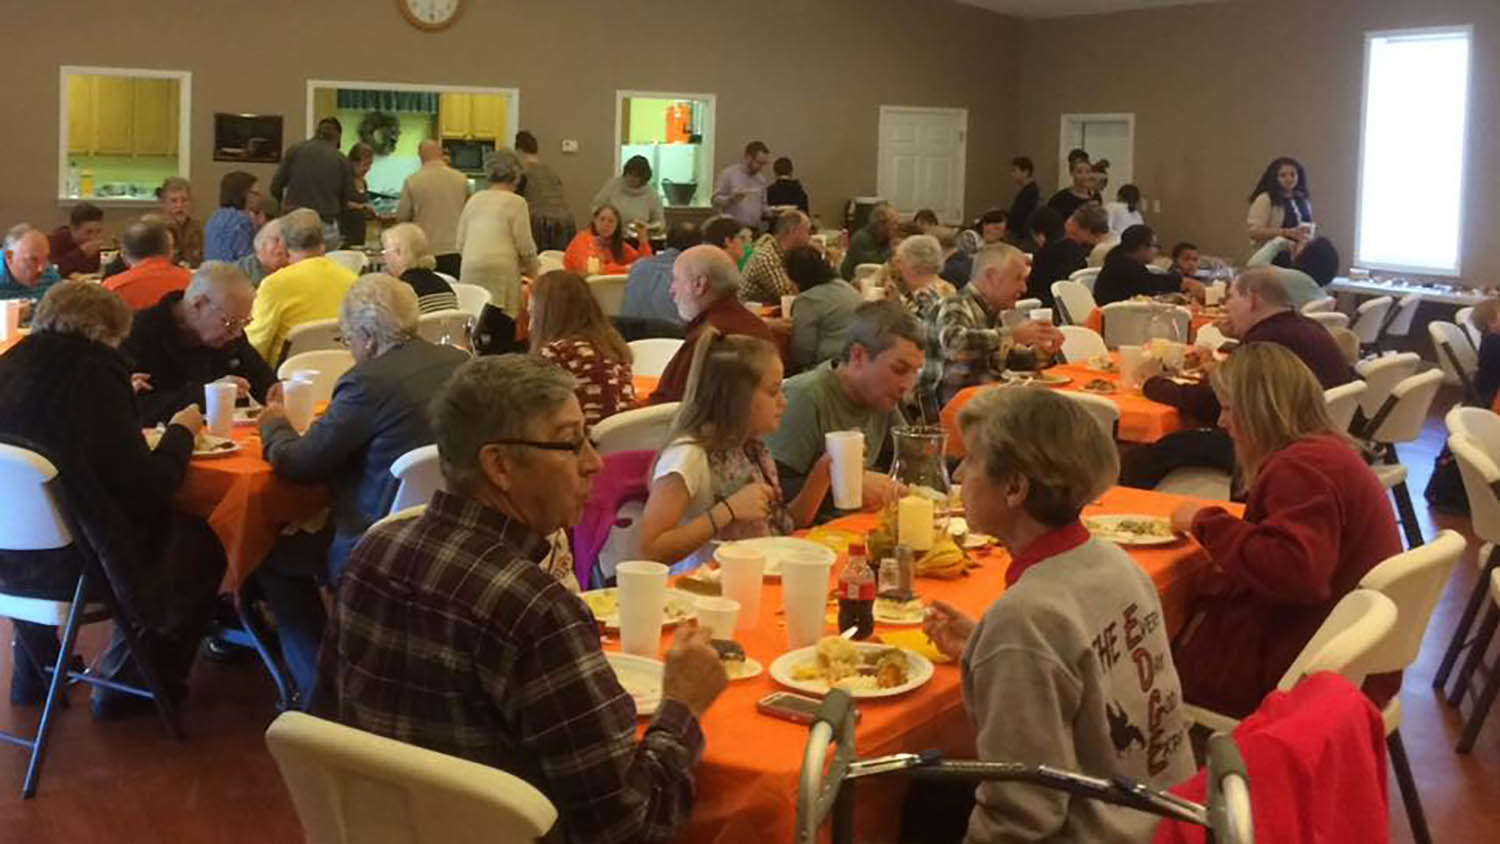 2016 Church Thanksgiving Dinner.jpg